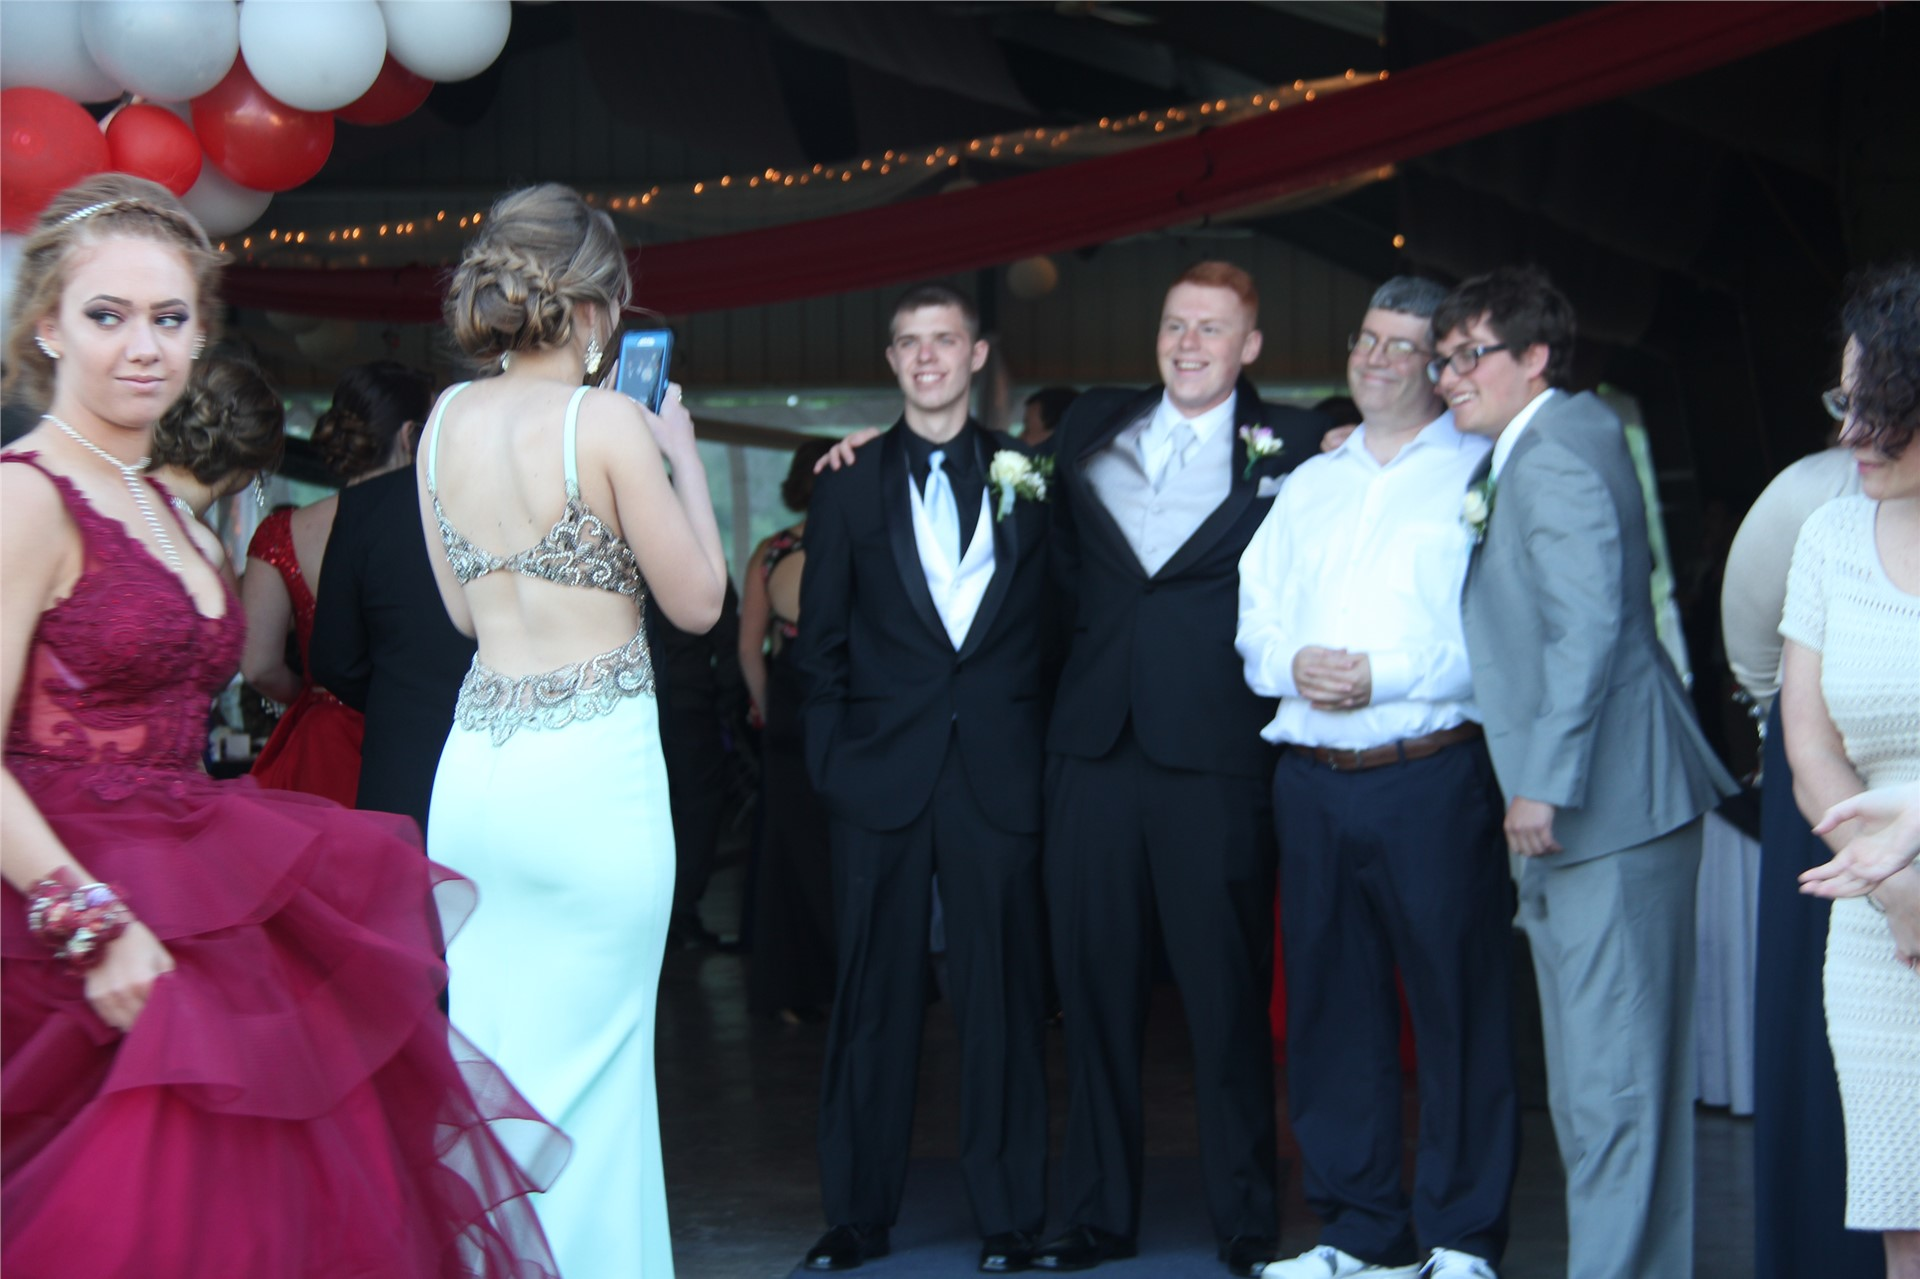 female student takes a photo of four male students posing at prom